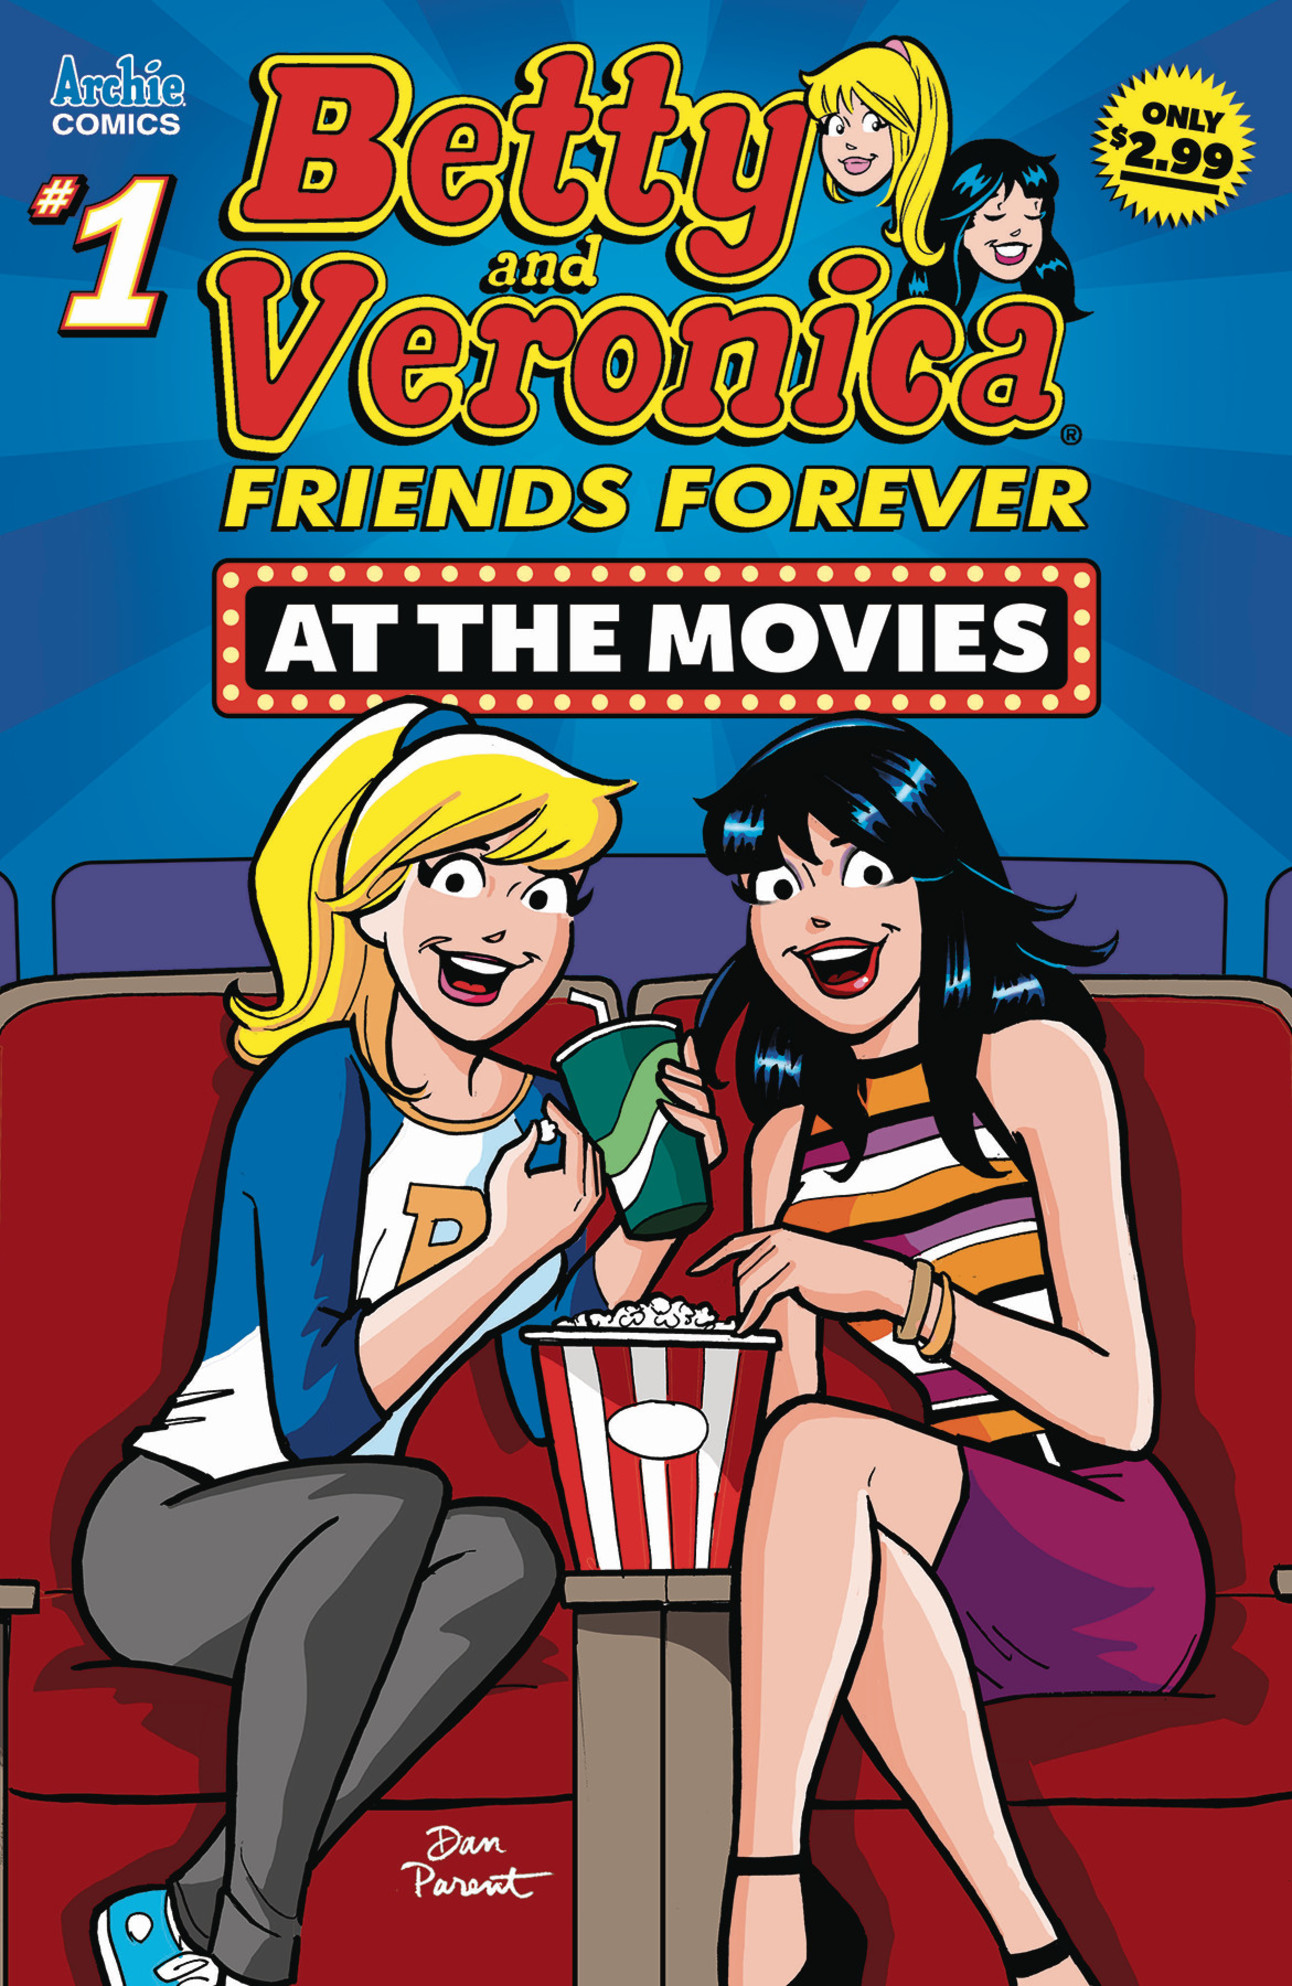 archie_betty_veronica_friends_forever_at_the_movies_cover.jpg